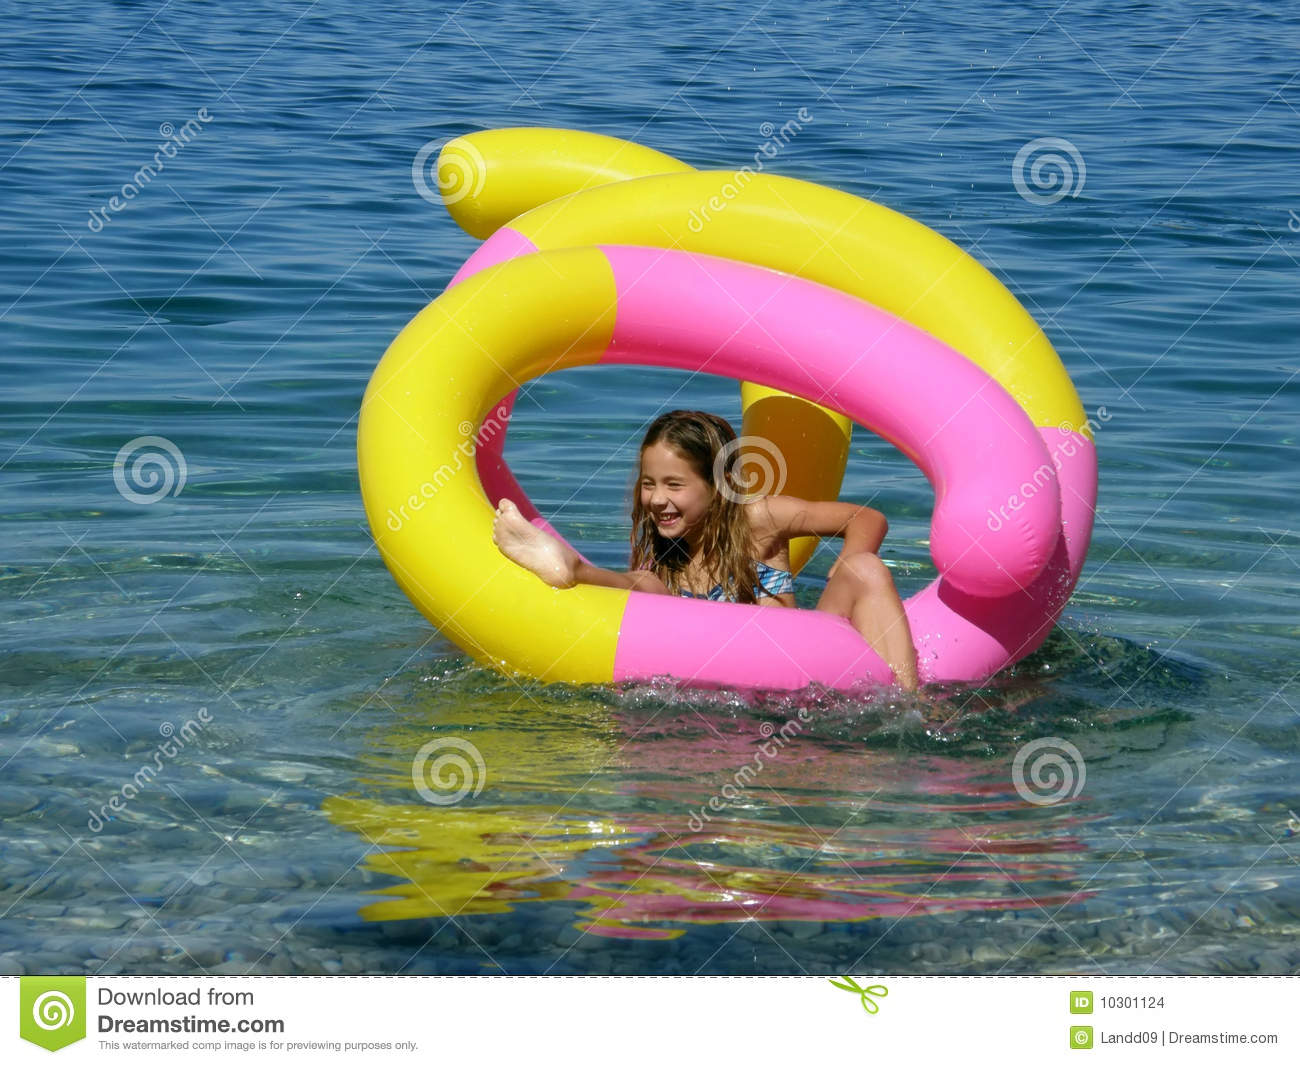 Beach Toys For Girls : Young teen girl on beach by lake summertime fun stock